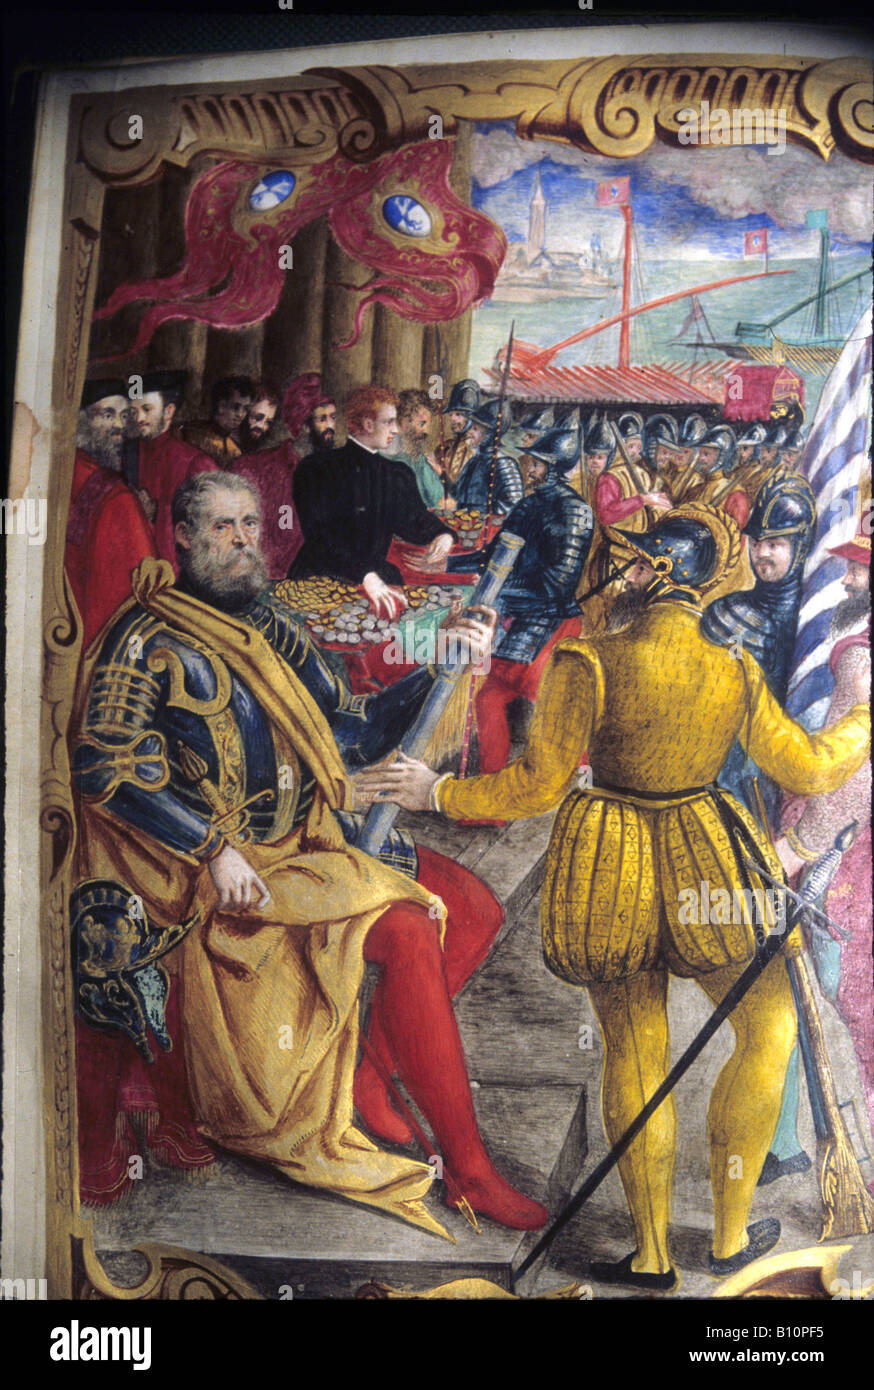 Girolamo Zane as Procurator of St Mark paying troops 16th cent Venice Copyright AAA Collection - Stock Image